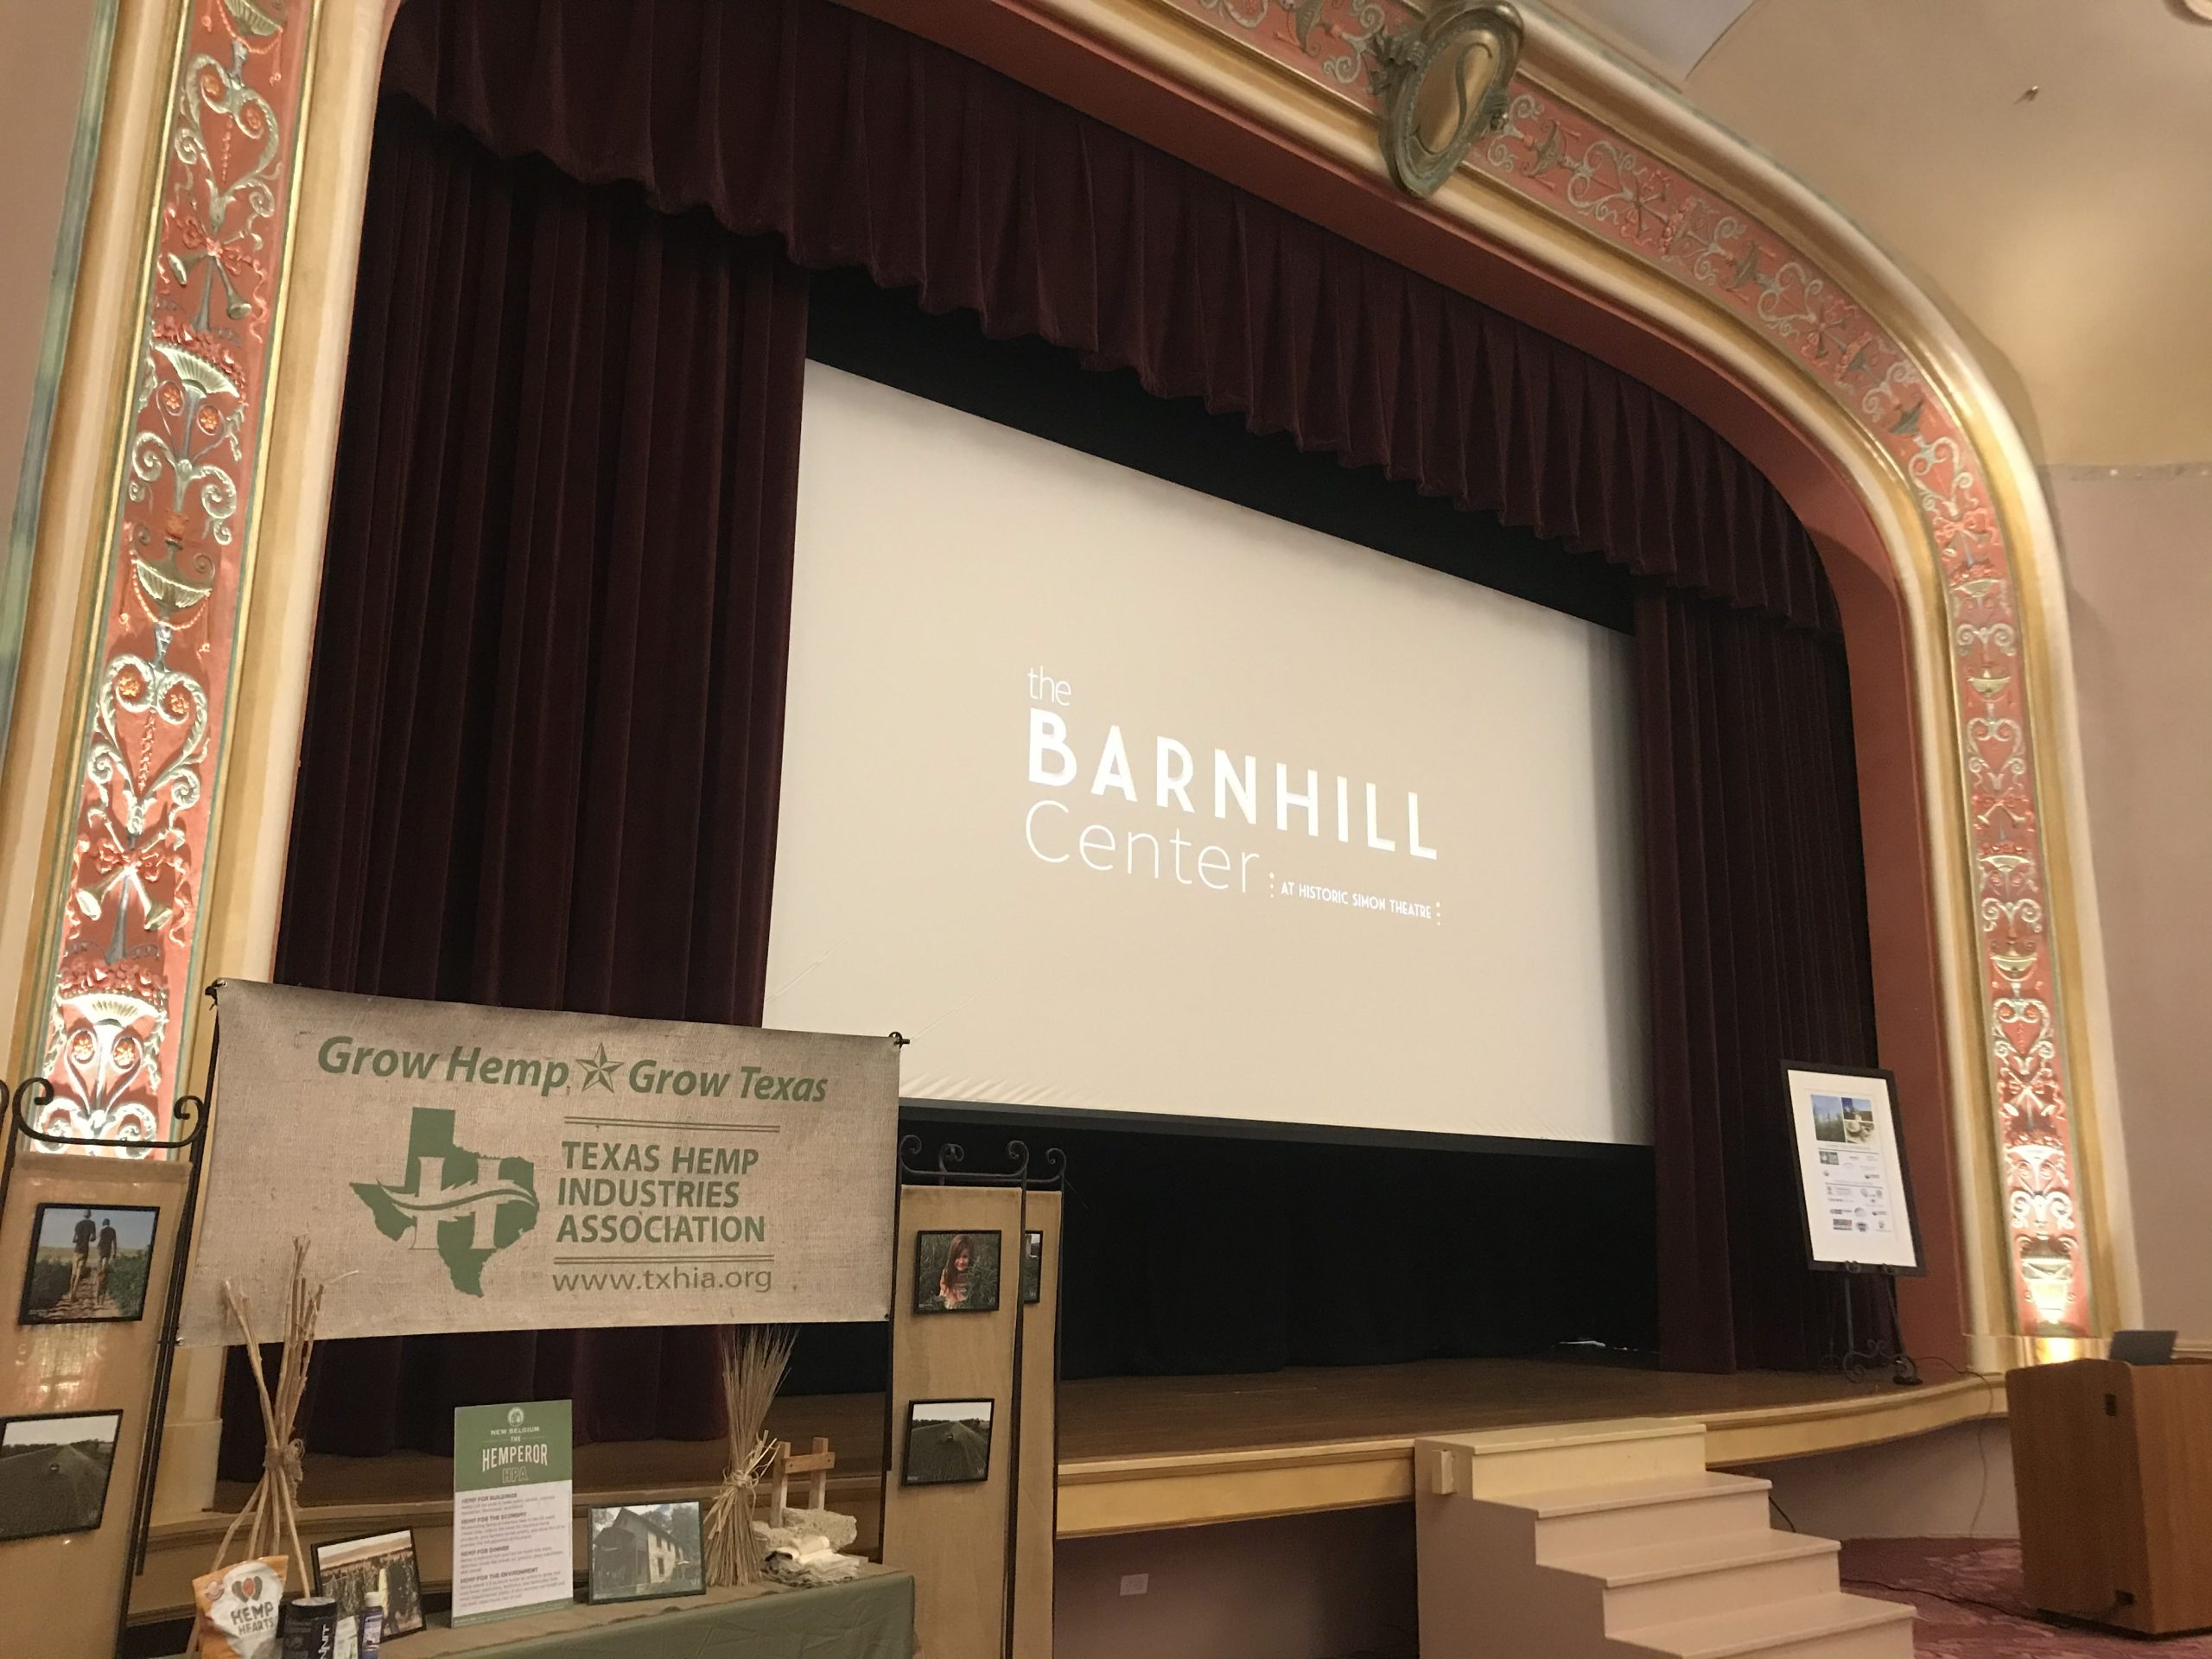 Interior shot of the Hasskarl Auditorium prepared for a multi-day conference. The screen is down showing the Barnhill Center logo with a visible podium and vendor booth in view of the stage.